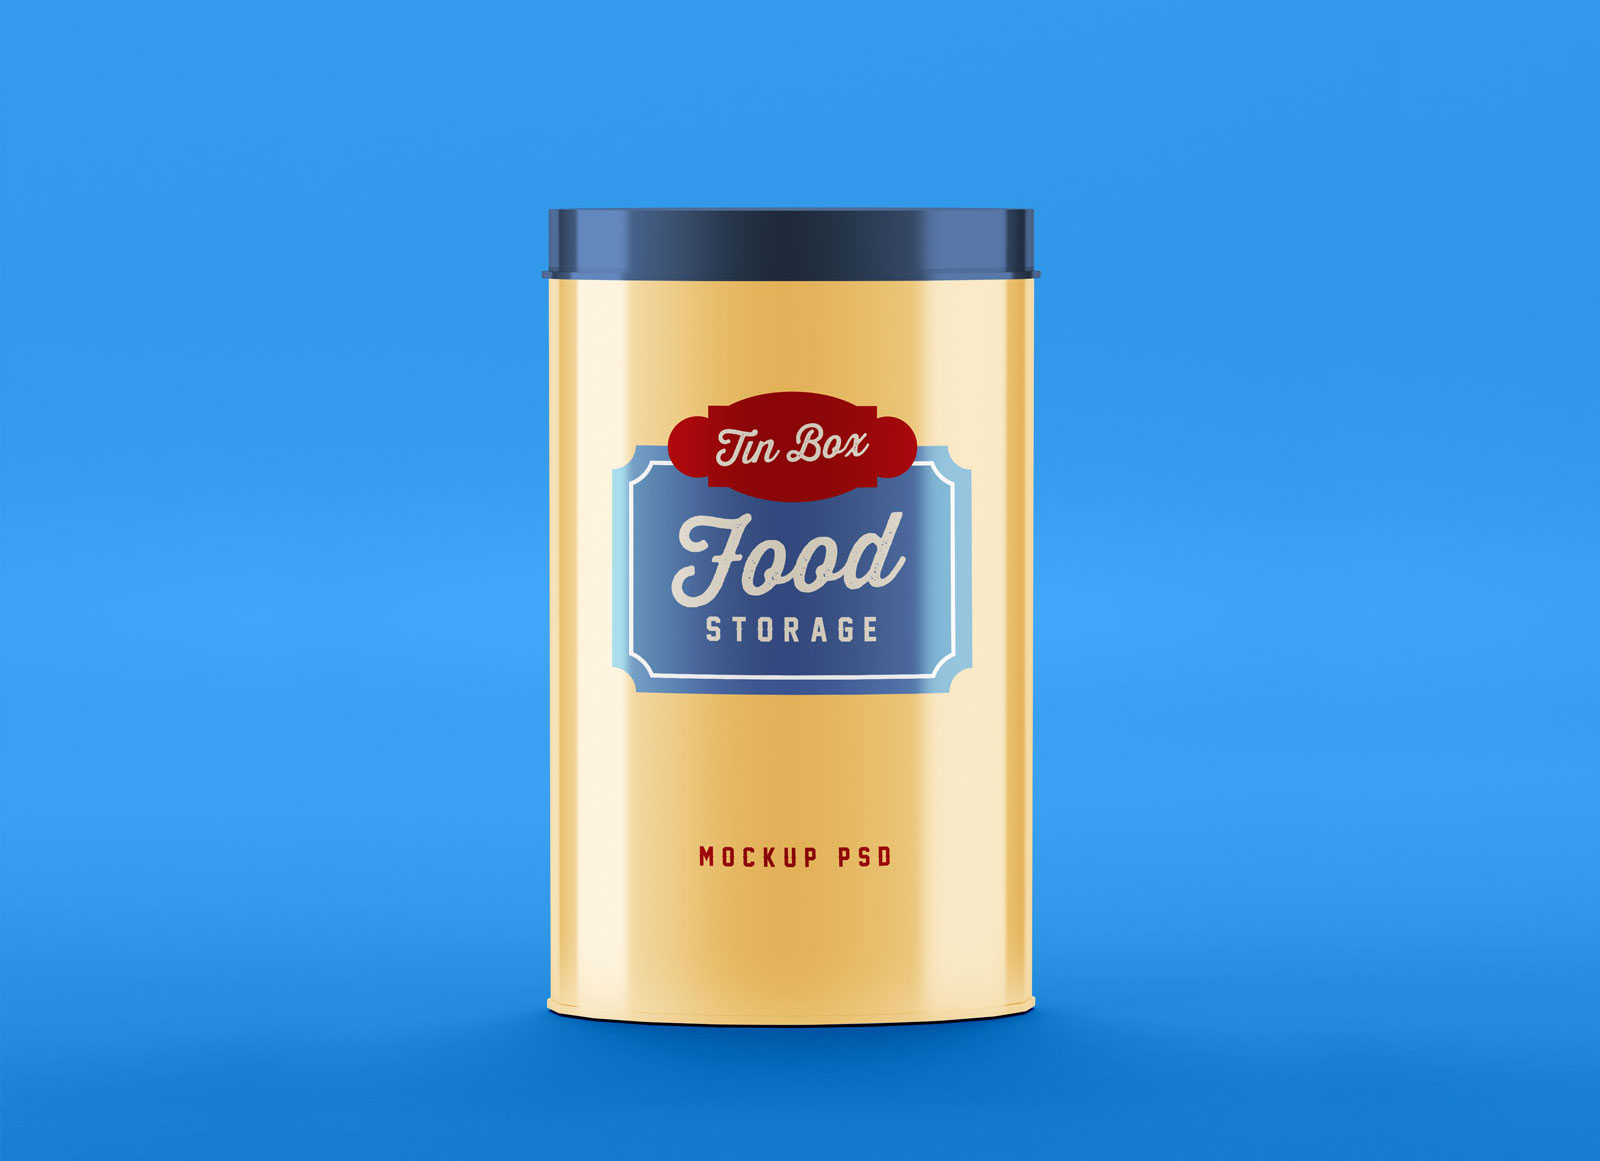 Free-Food-Storage-Tin-Can-Mockup-PSD-File